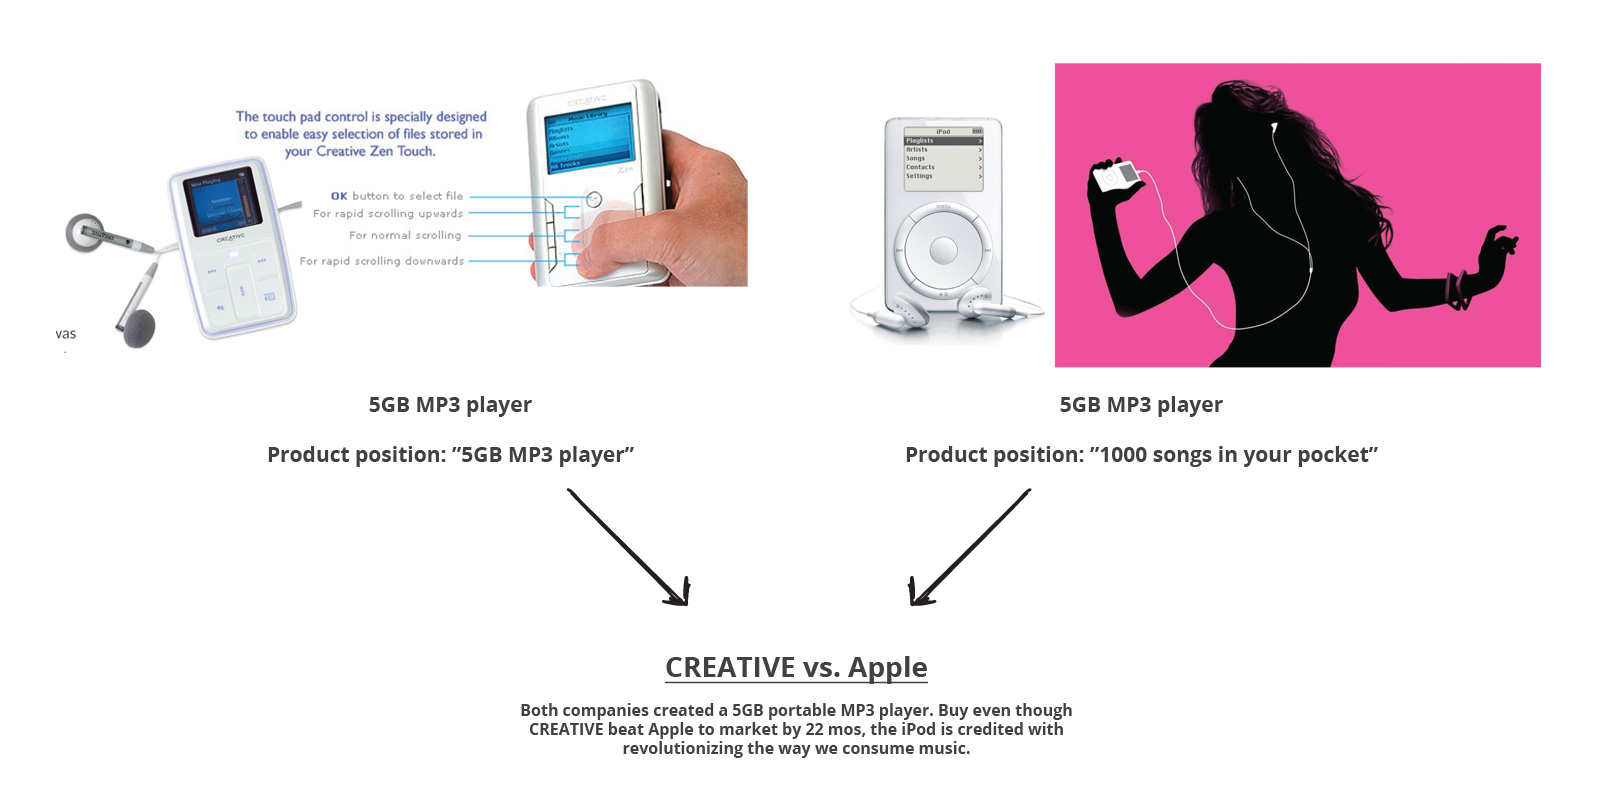 The difference is Creative told us WHAT their product was and Apple told us WHY we needed it.